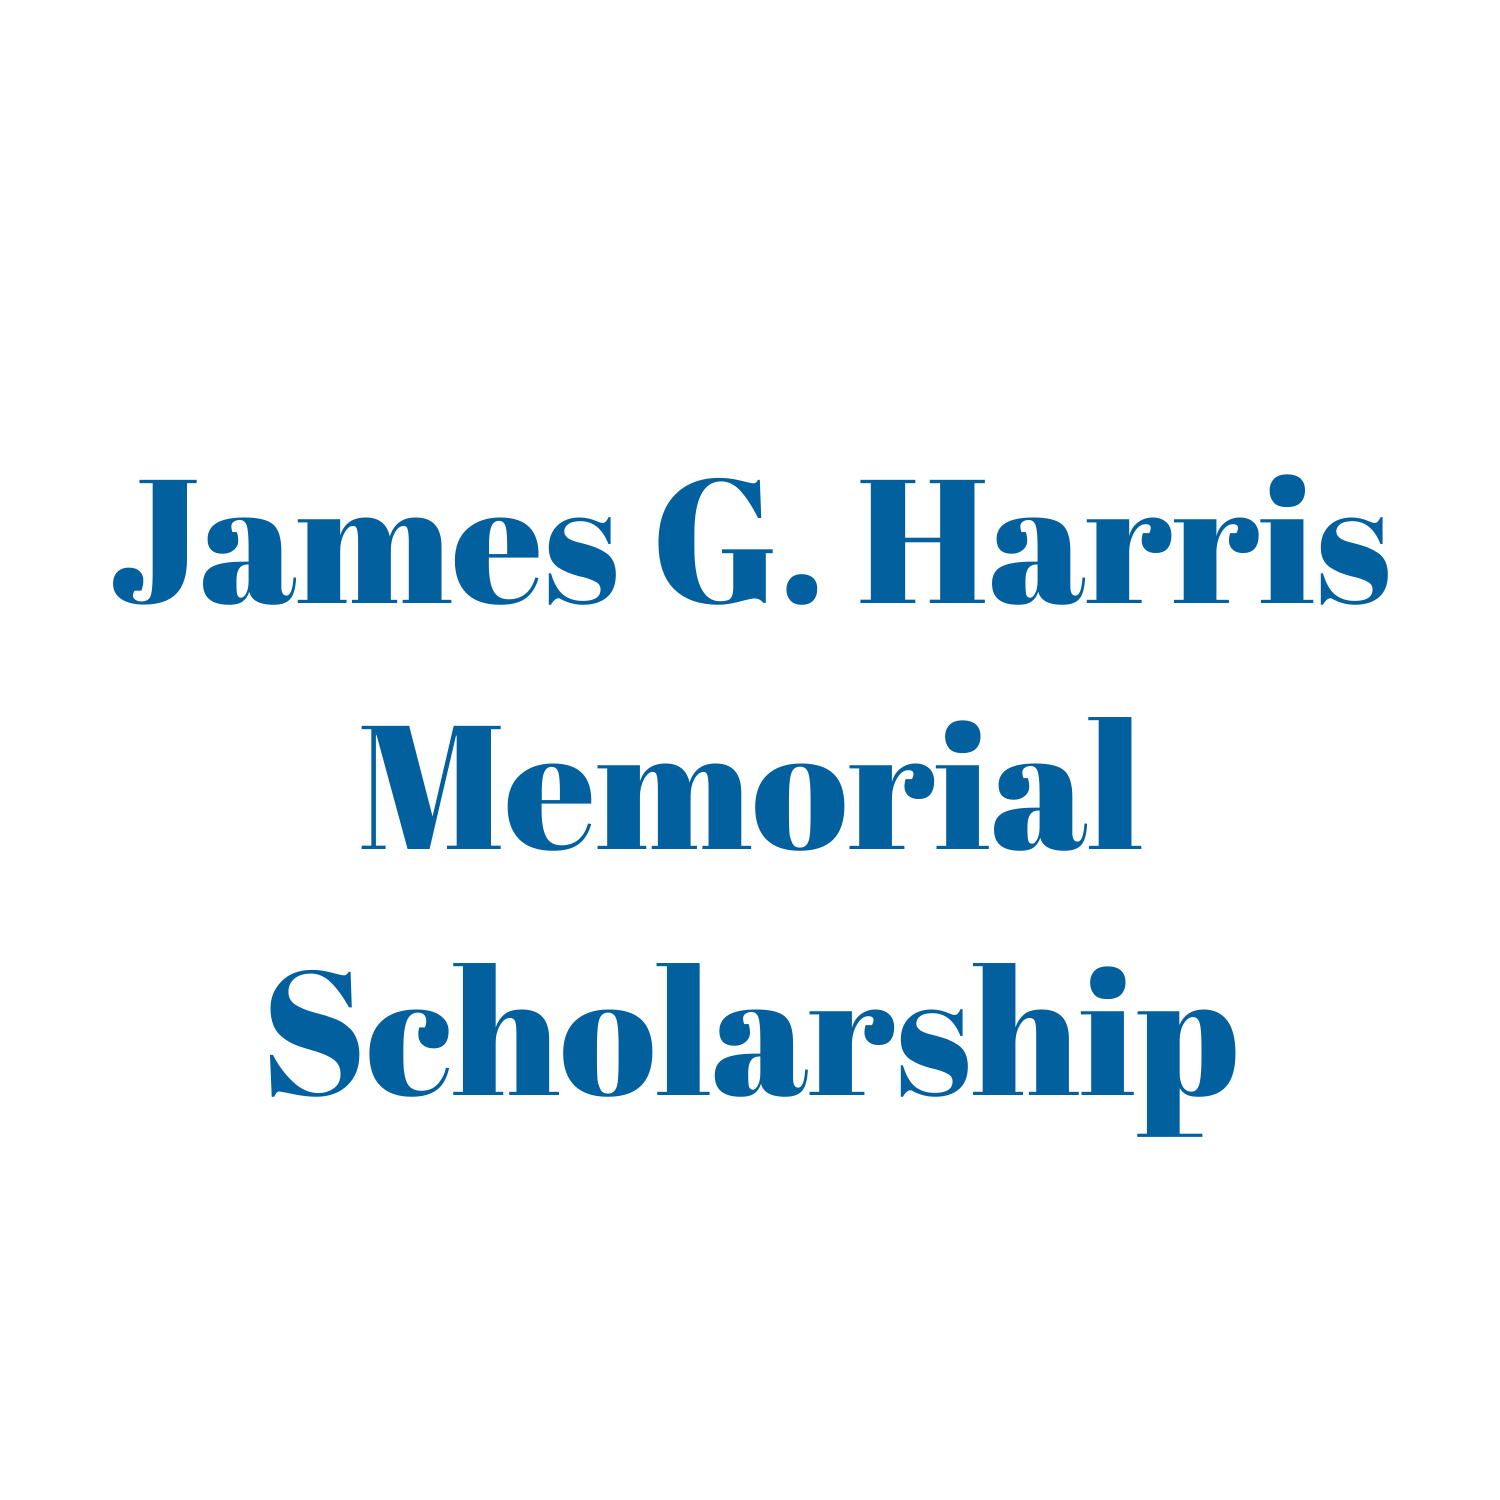 James G. Harris Memorial Scholarship